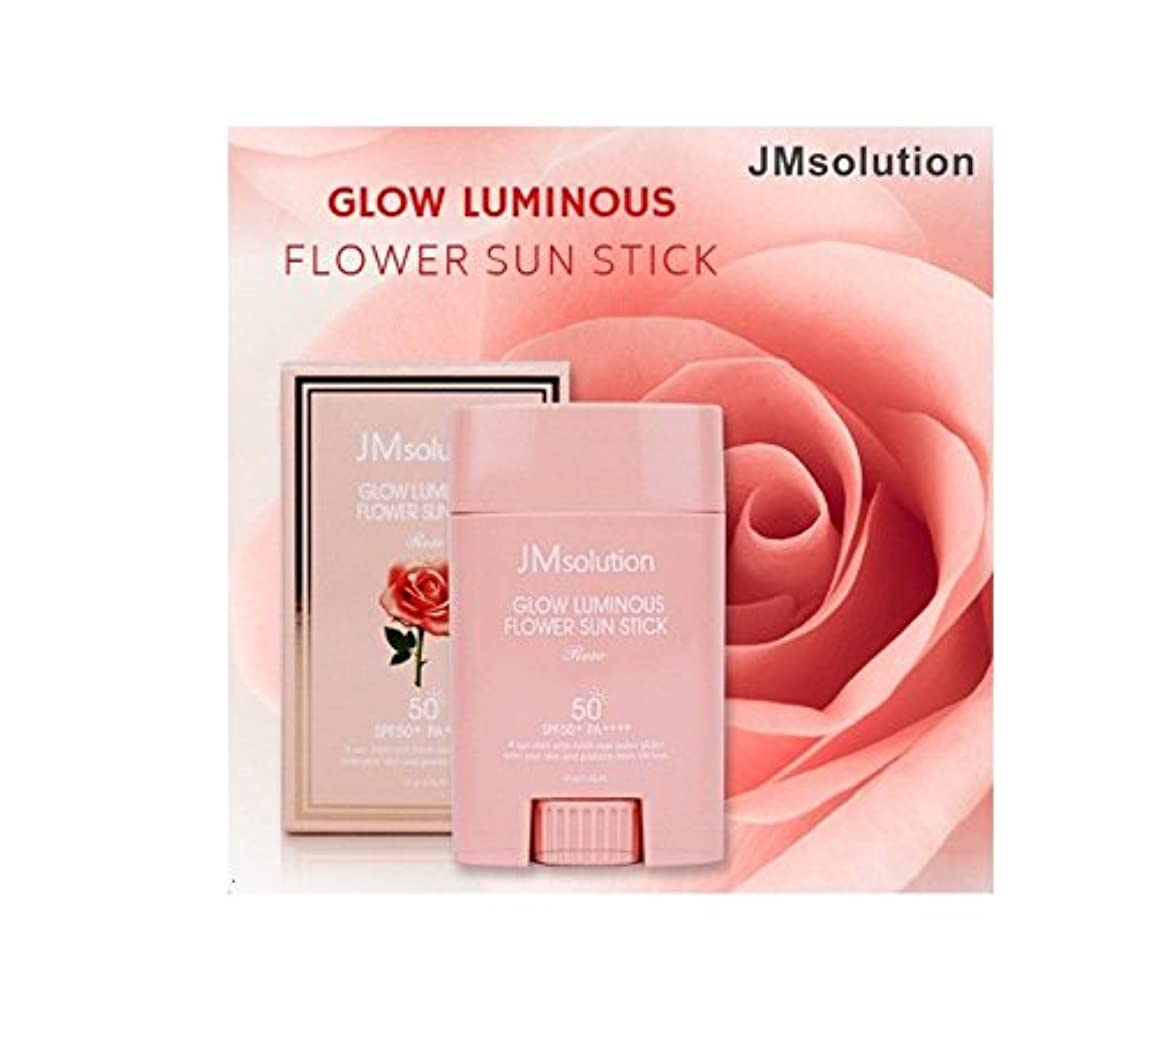 パーク強い正しくJM Solution Glow Luminous Flower Sun Stick Rose 21g (spf50 PA) 光る輝く花Sun Stick Rose